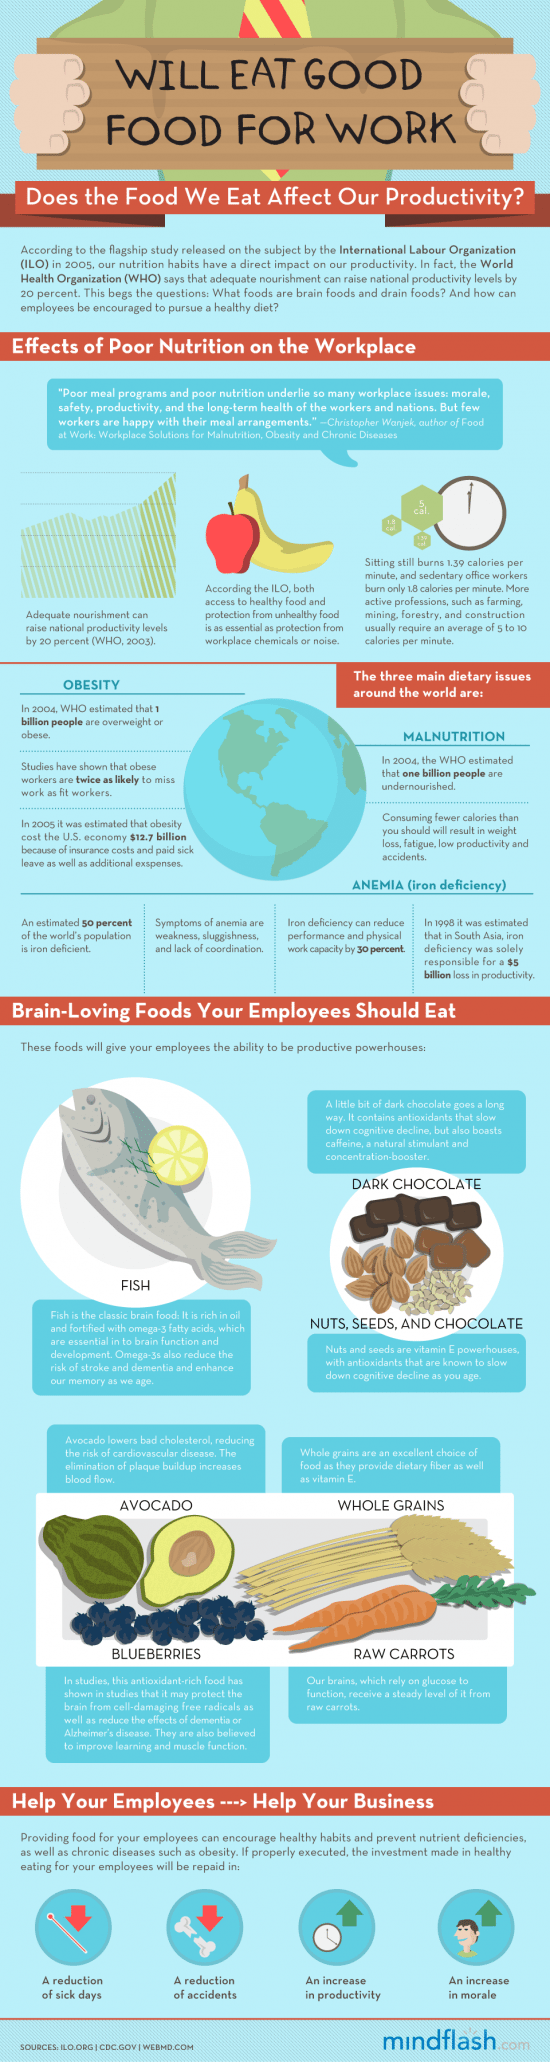 Does the food we eat affect our productivity? 1